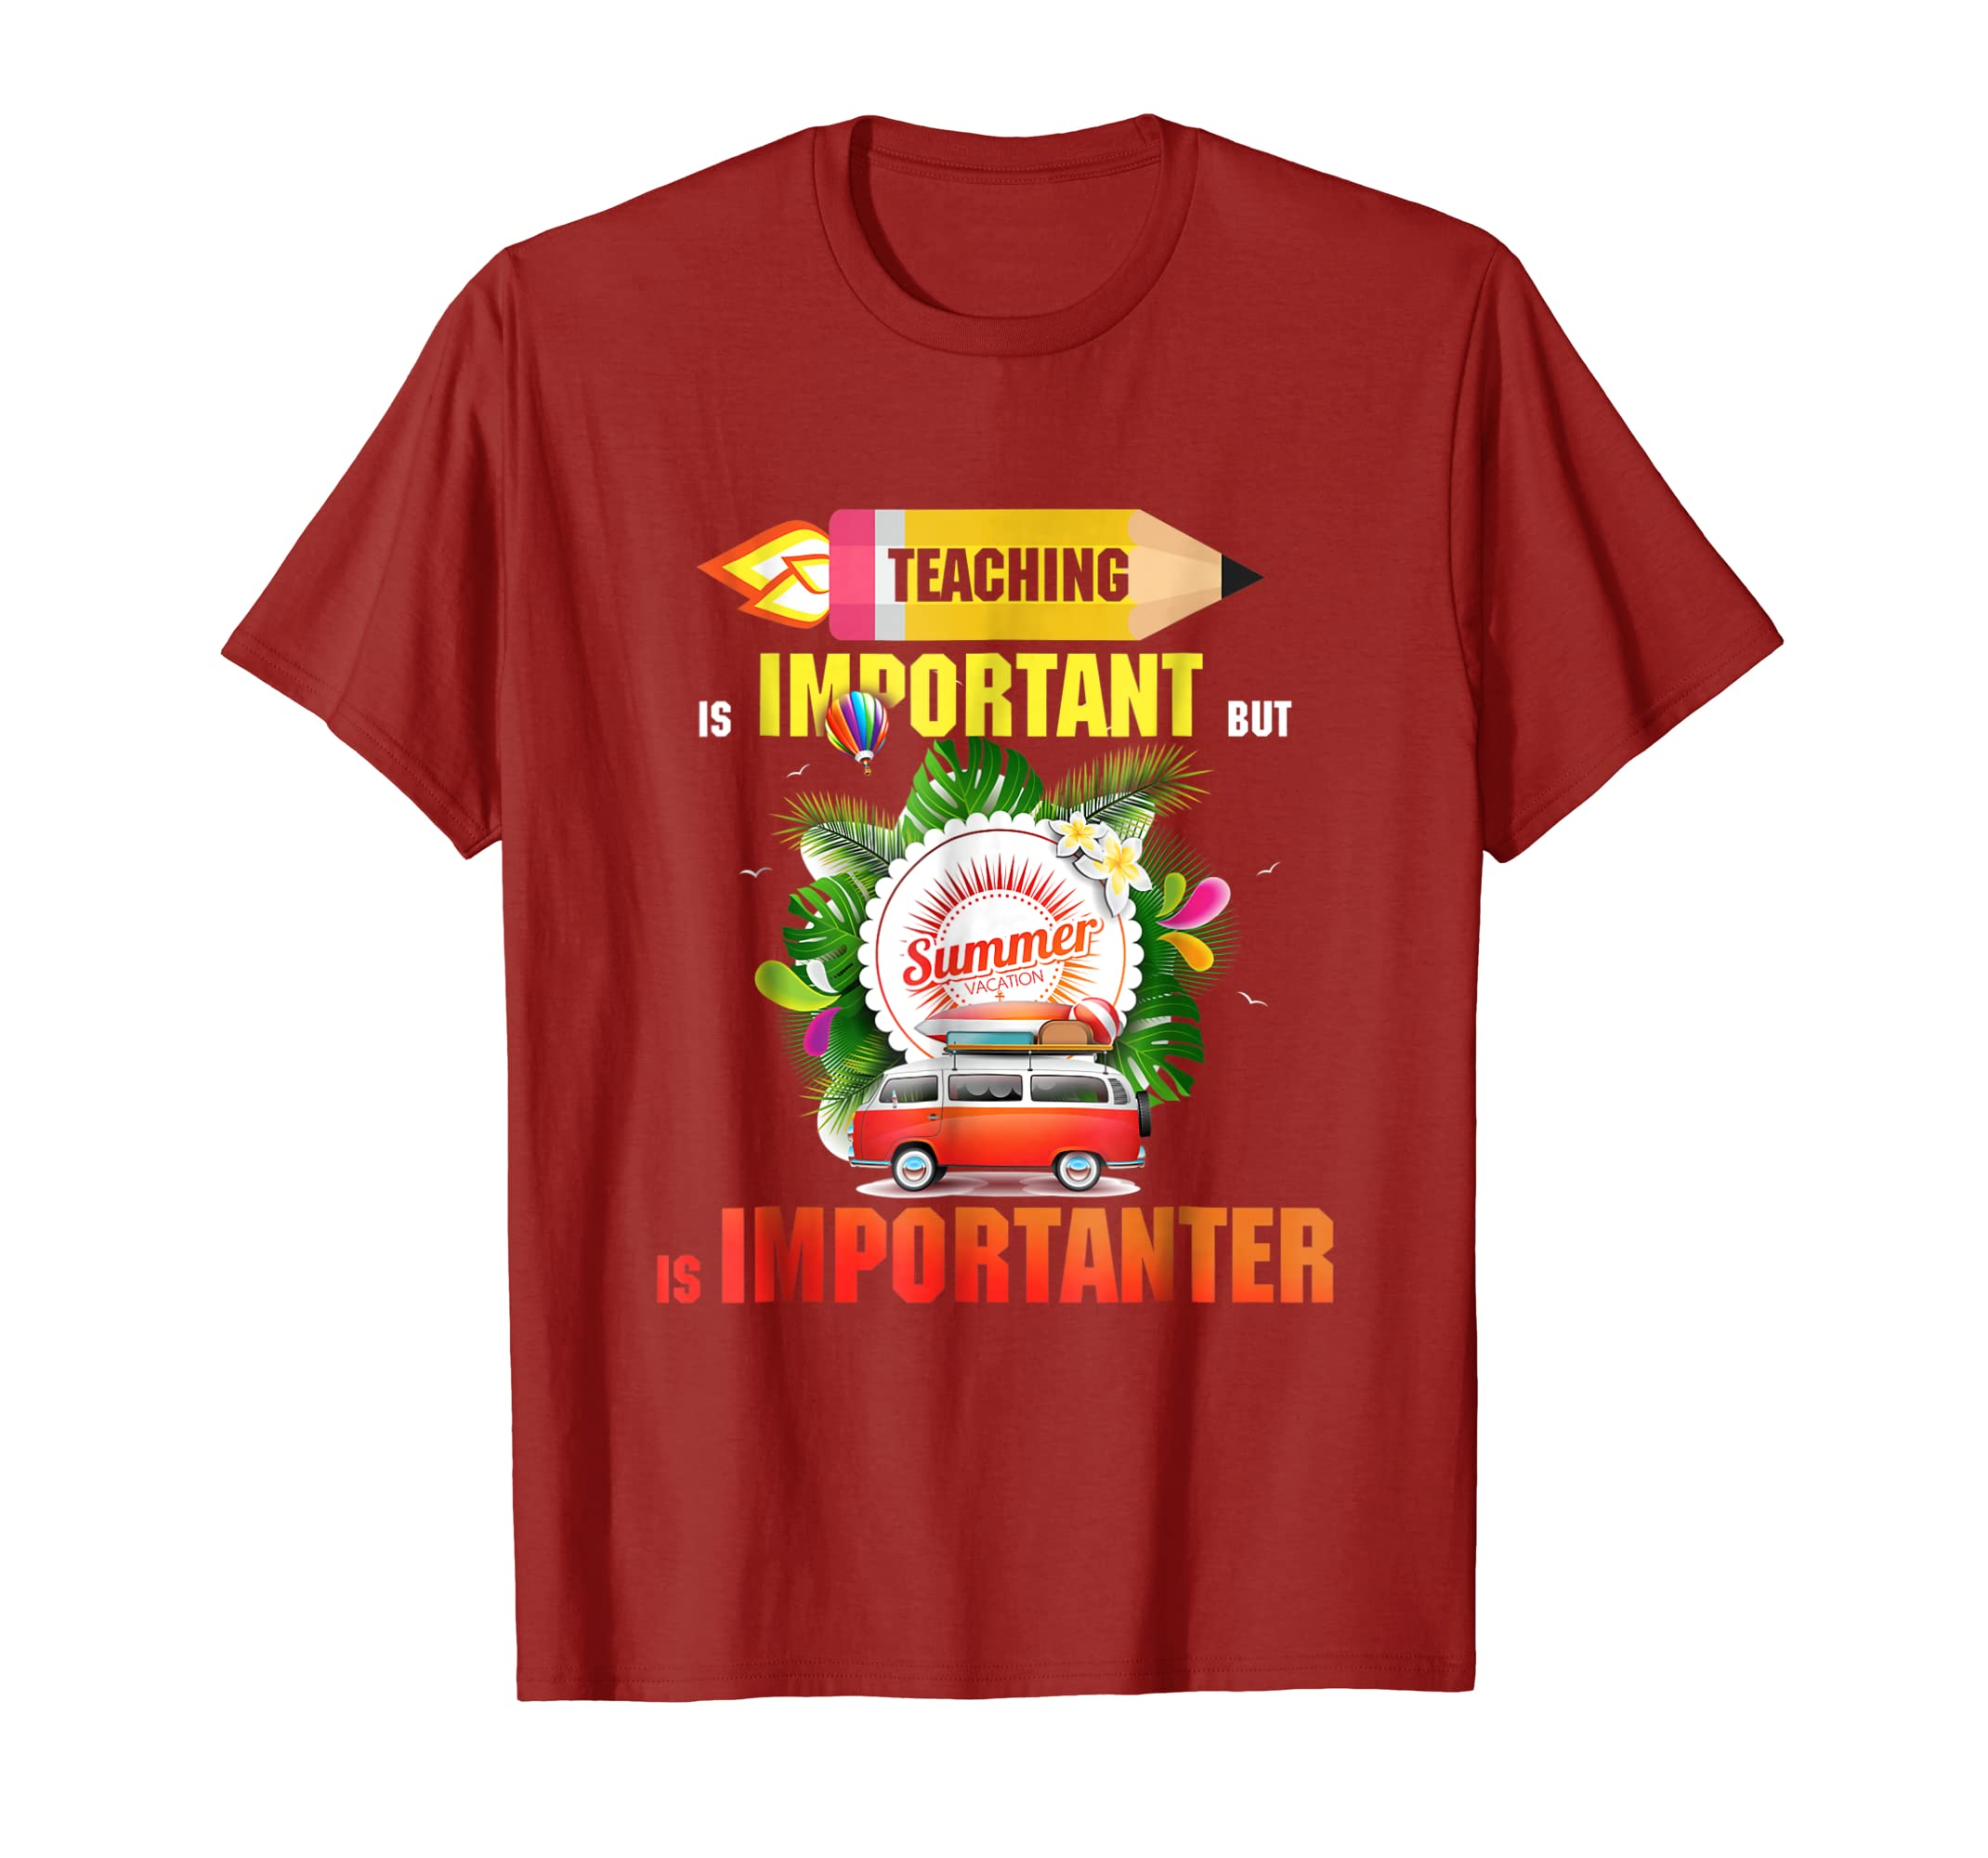 f11fae40b99a Teaching is Important But Summer Vacation T-Shirt-alottee gift - Alottee